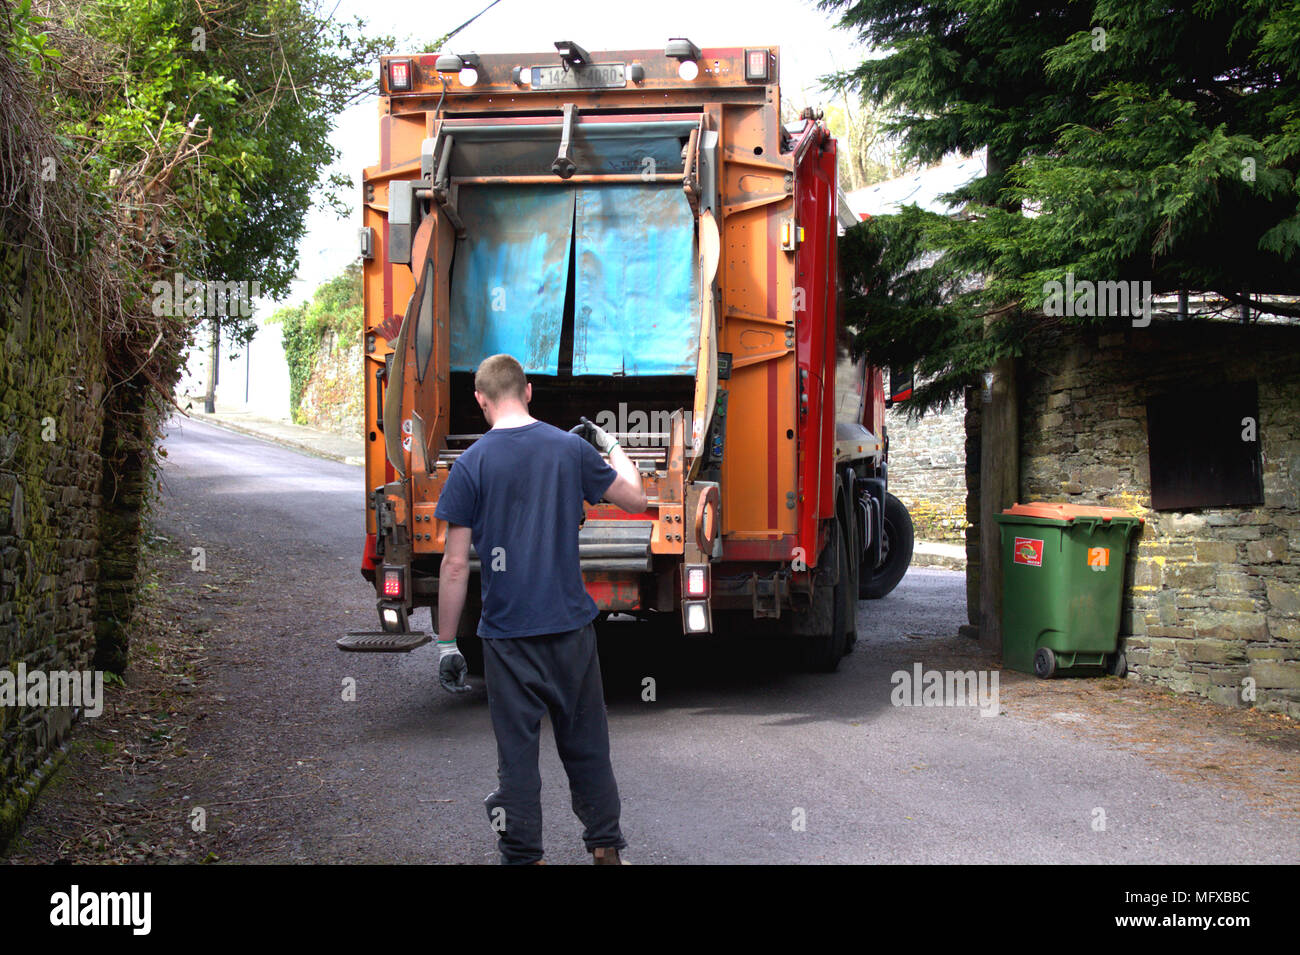 young adult male guiding a garbage bin collection lorry, truck that is reversing into a narrow road, prior to collecting the rubbish, garbage. - Stock Image